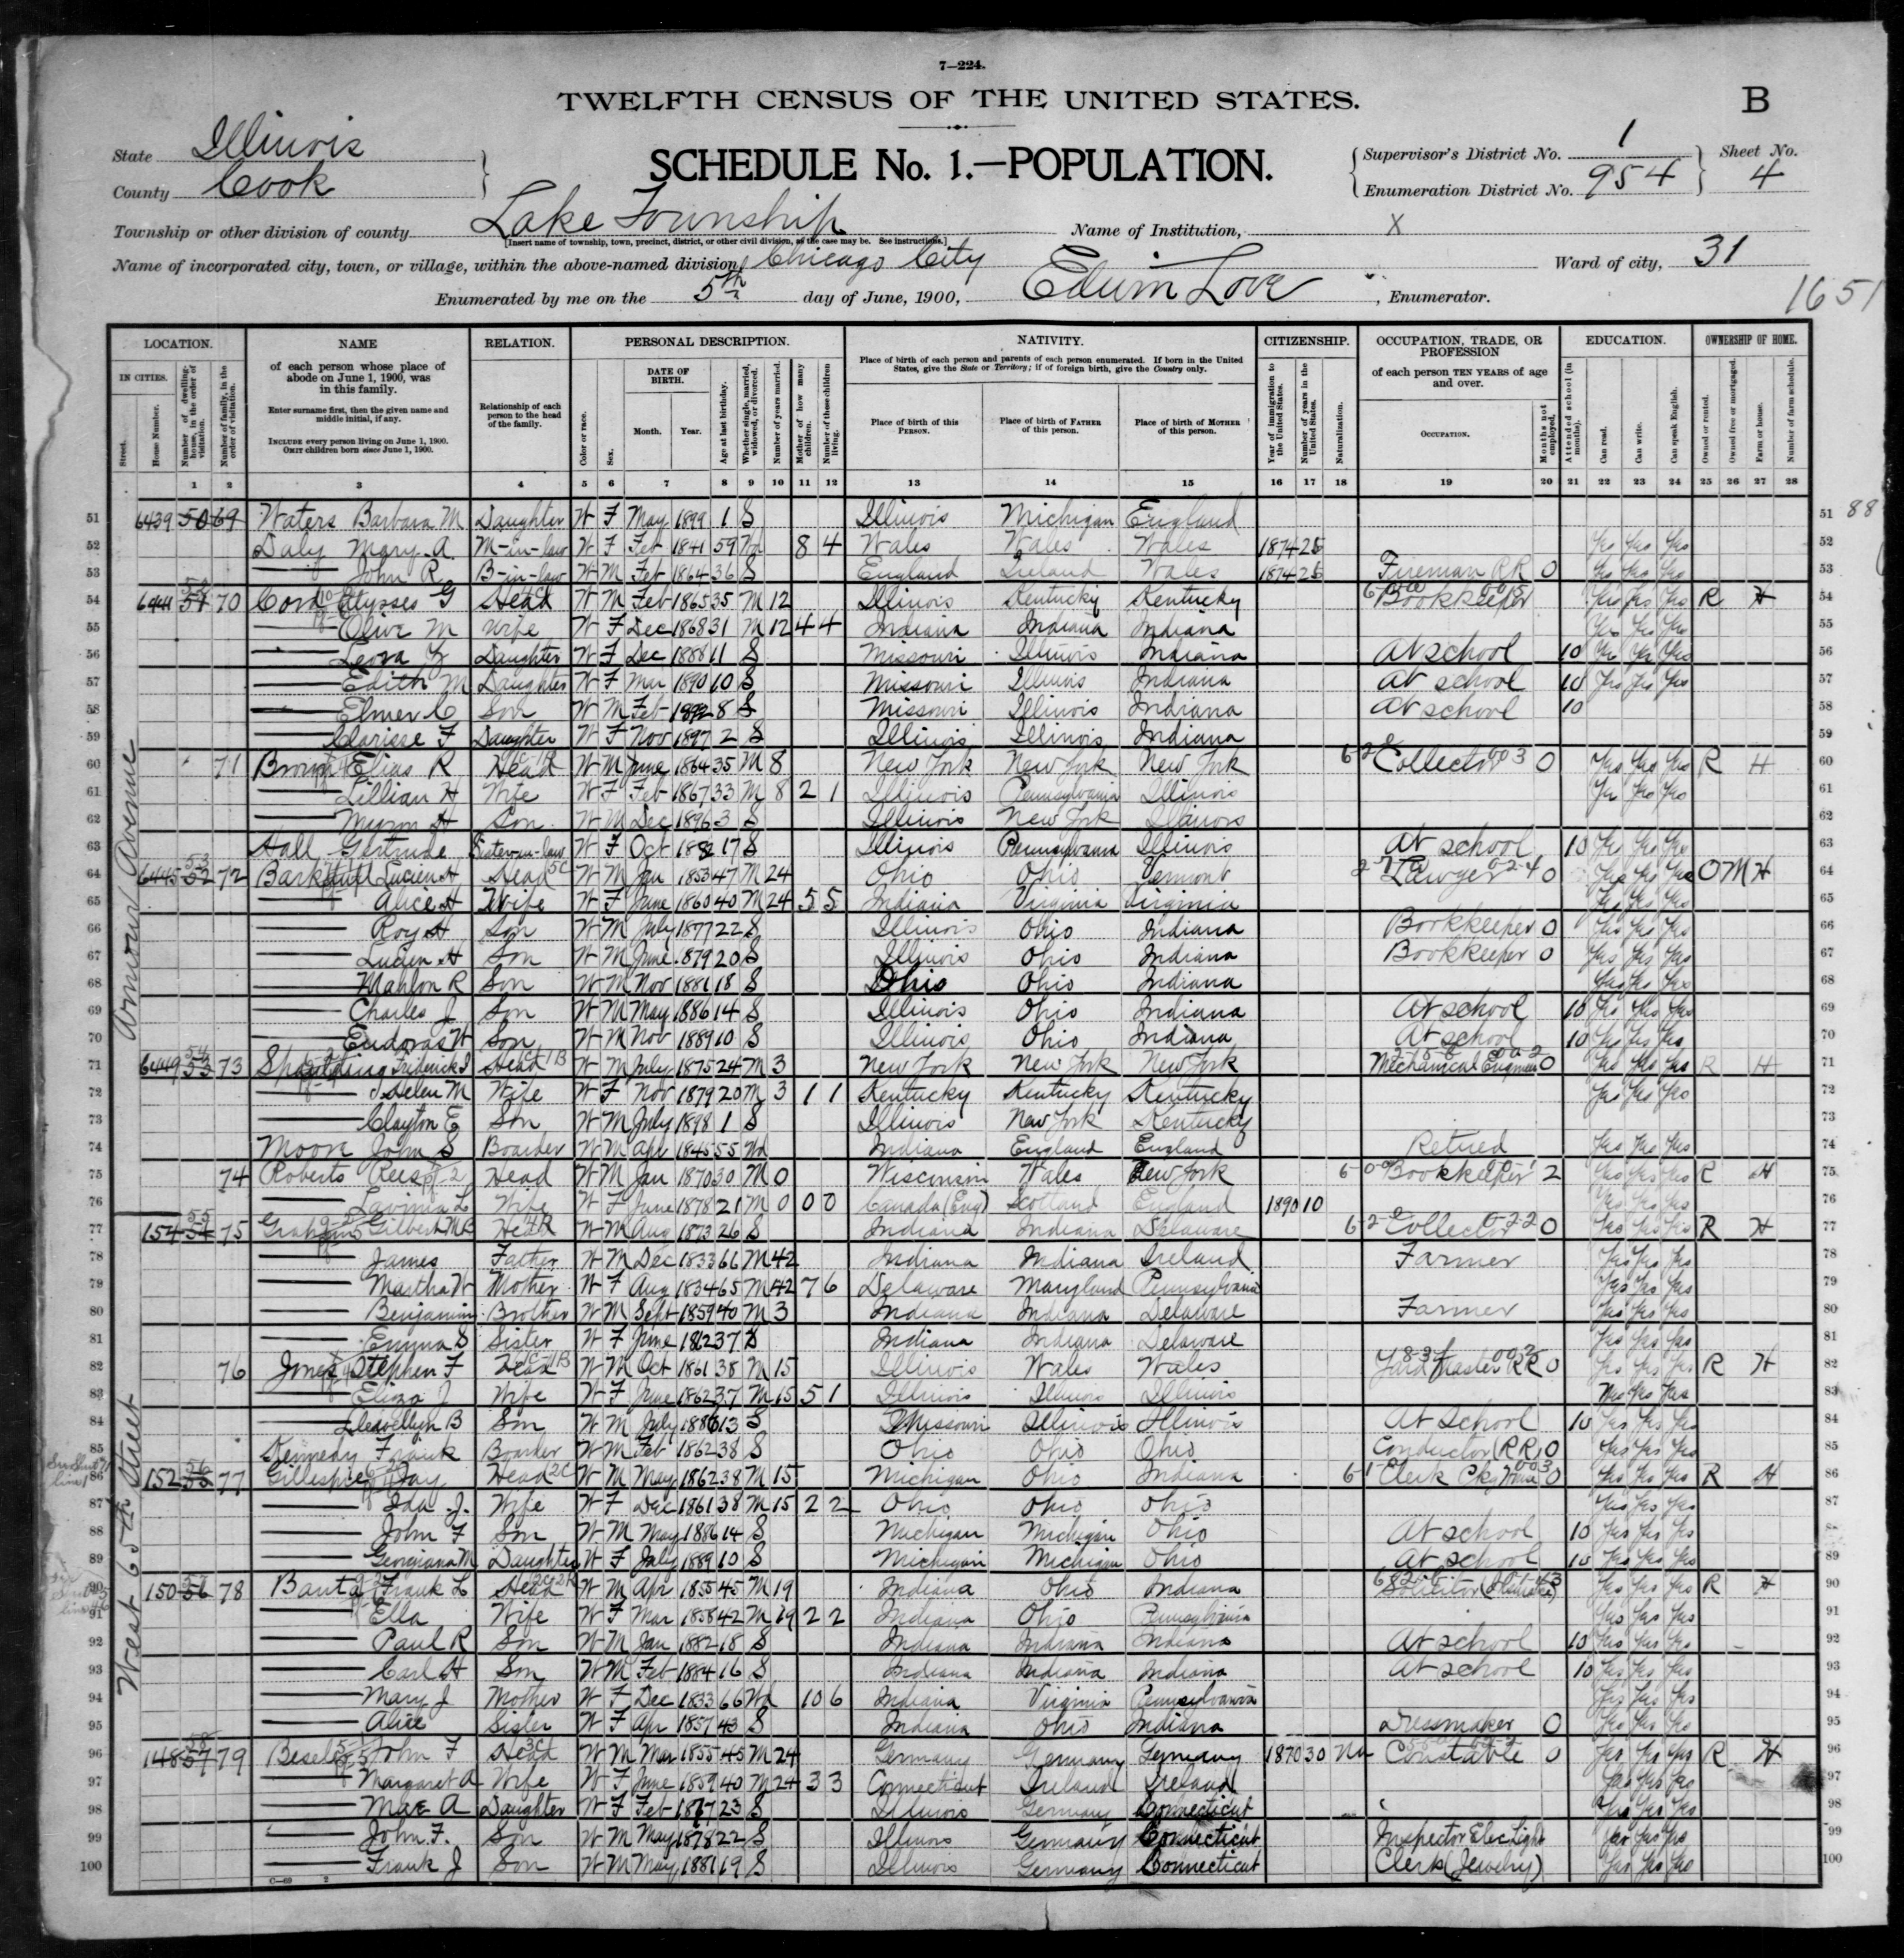 Illinois: COOK County, Enumeration District 954, Sheet No. 4B